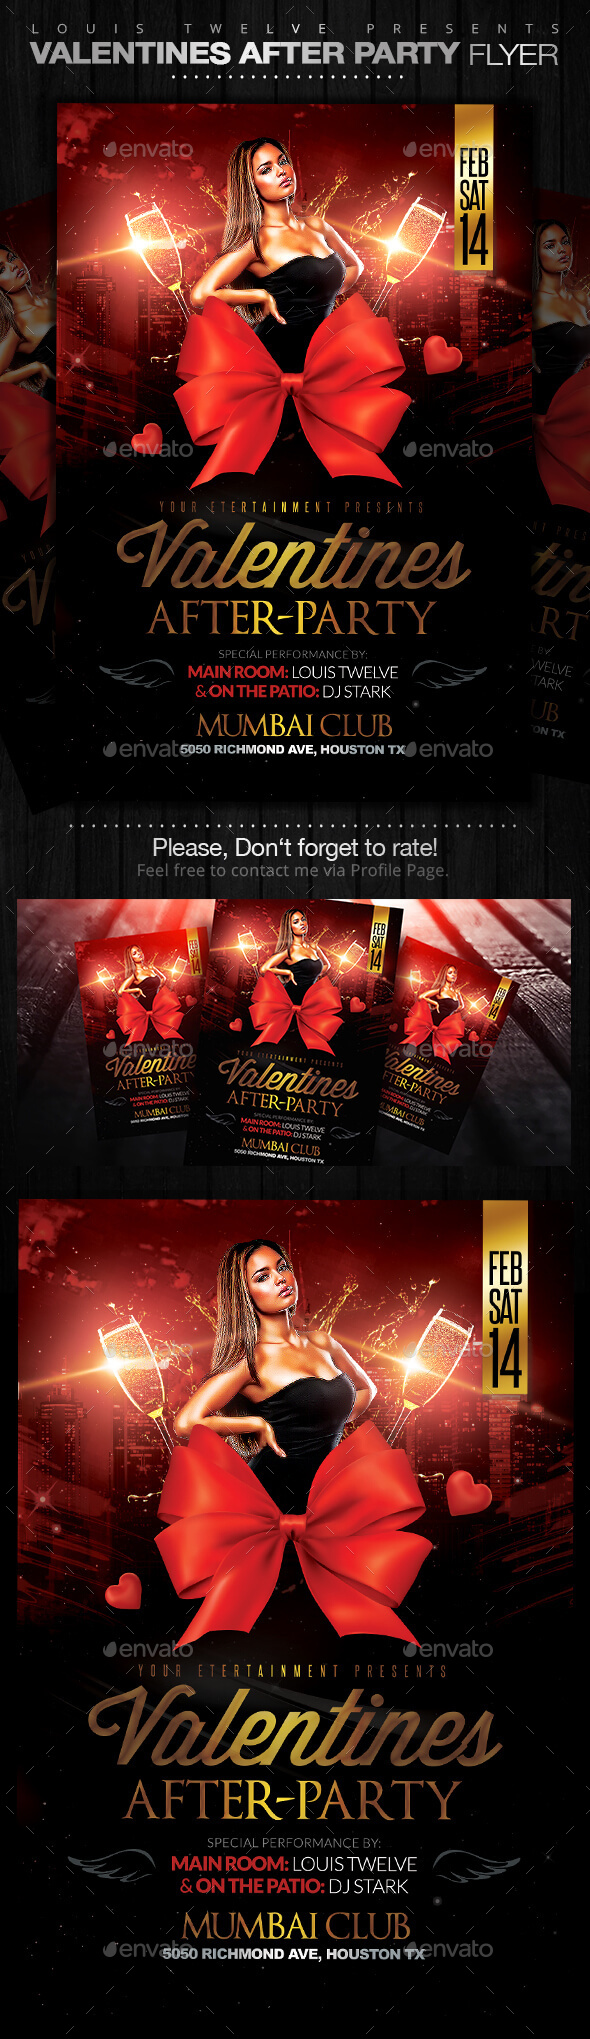 Valentines After Party Flyer Template - Clubs & Parties Events